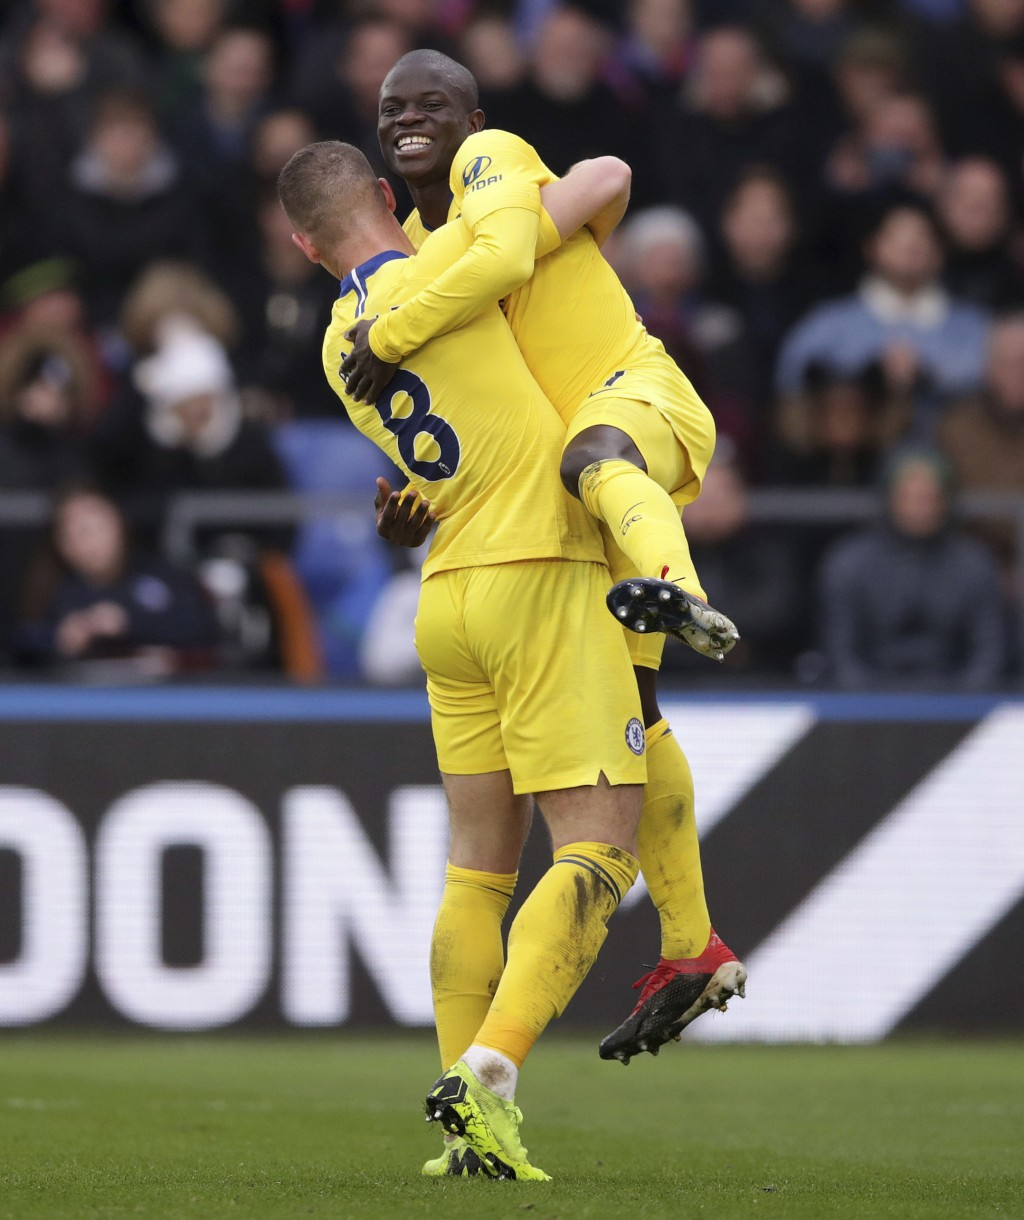 Chelsea's N'Golo Kante, top, celebrates scoring his side's first goal of the game against Crystal Palace, with teammate Ross Barkley, during their Eng...